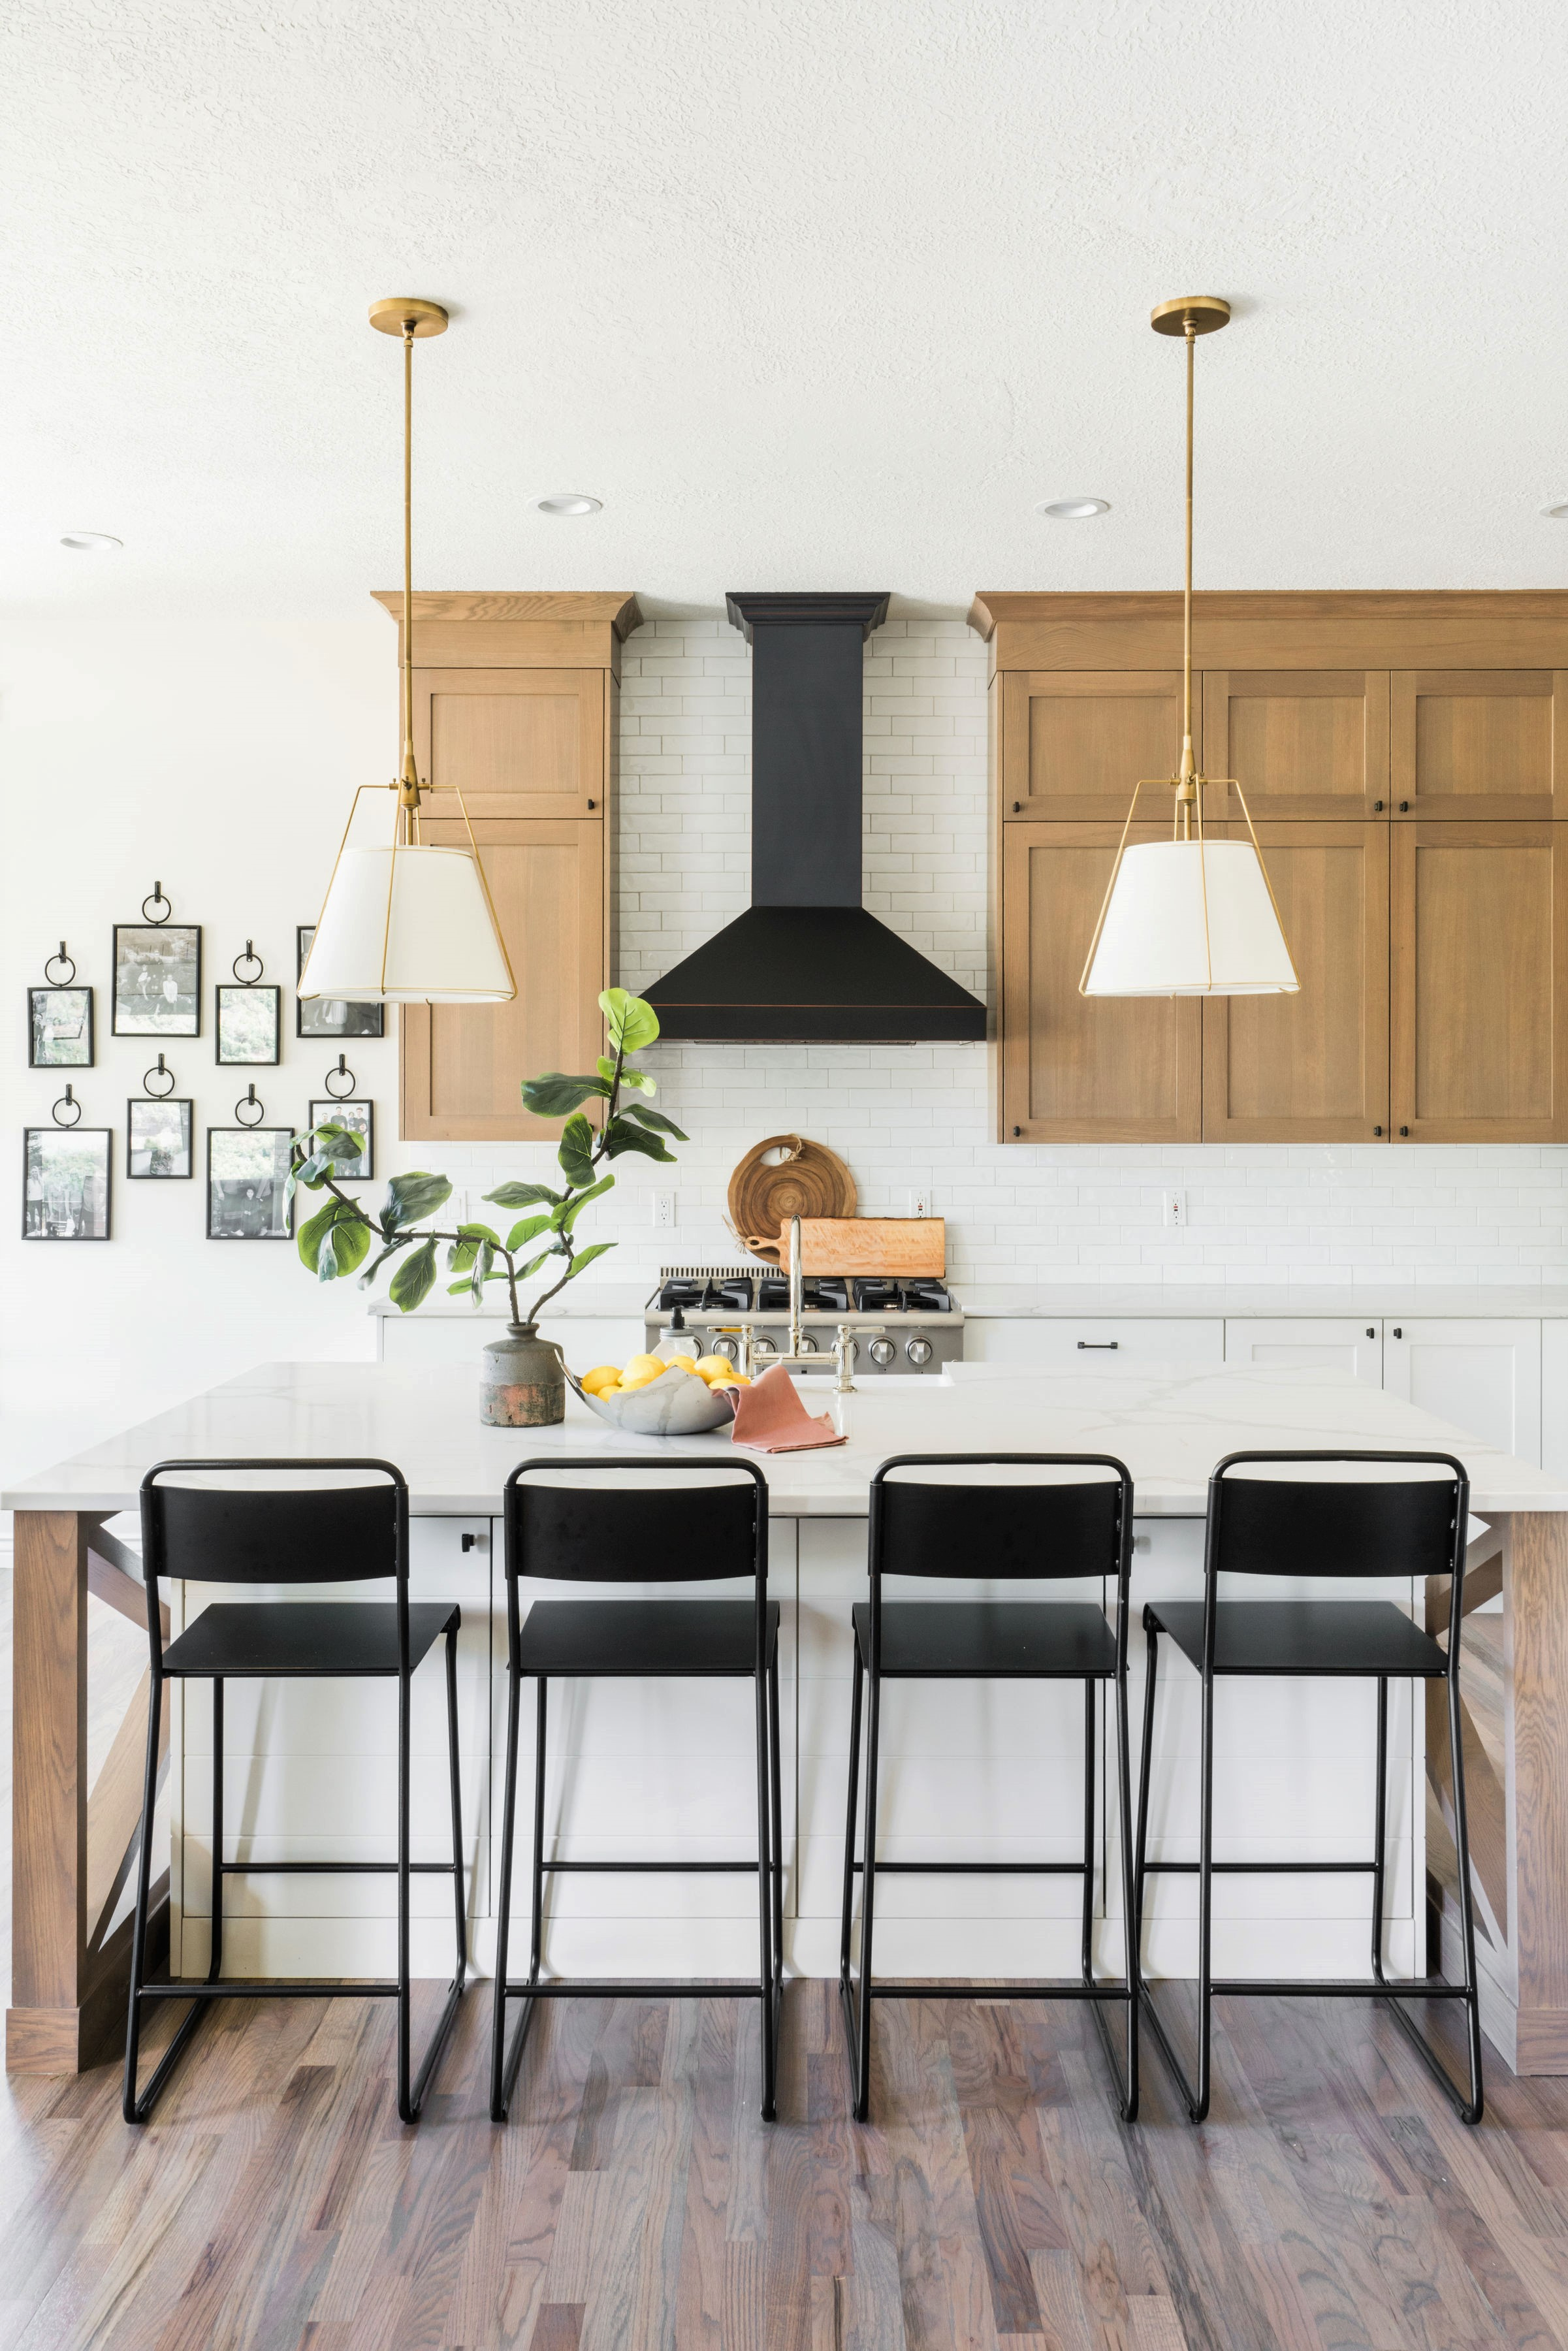 oak point kitchen island with black chairs